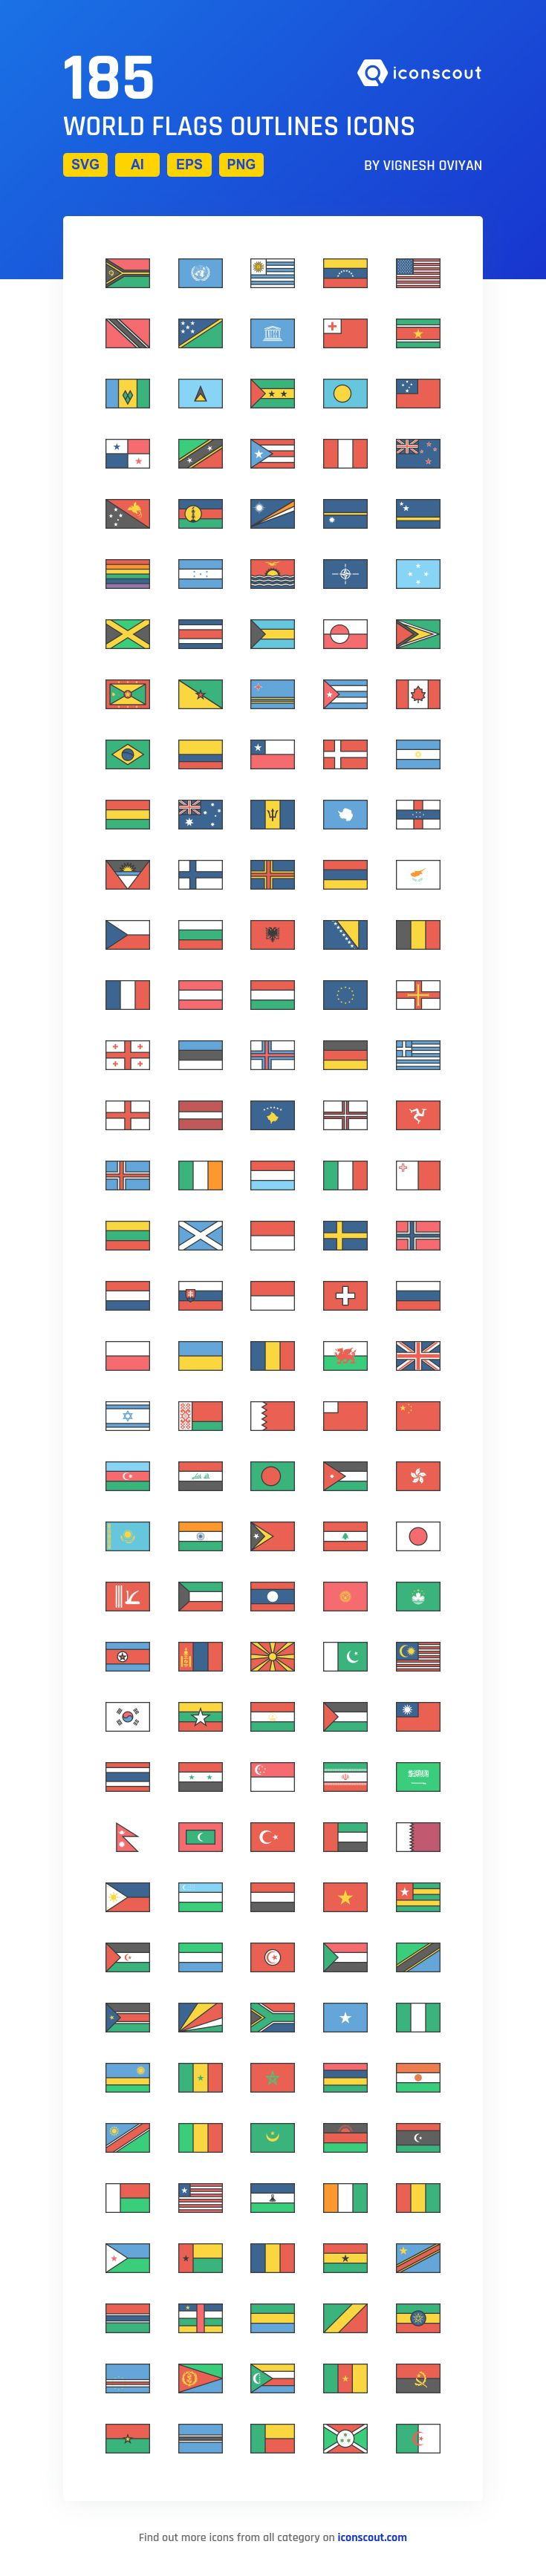 World Flags Outlines  Icon Pack - 185 Filled Outline Icons